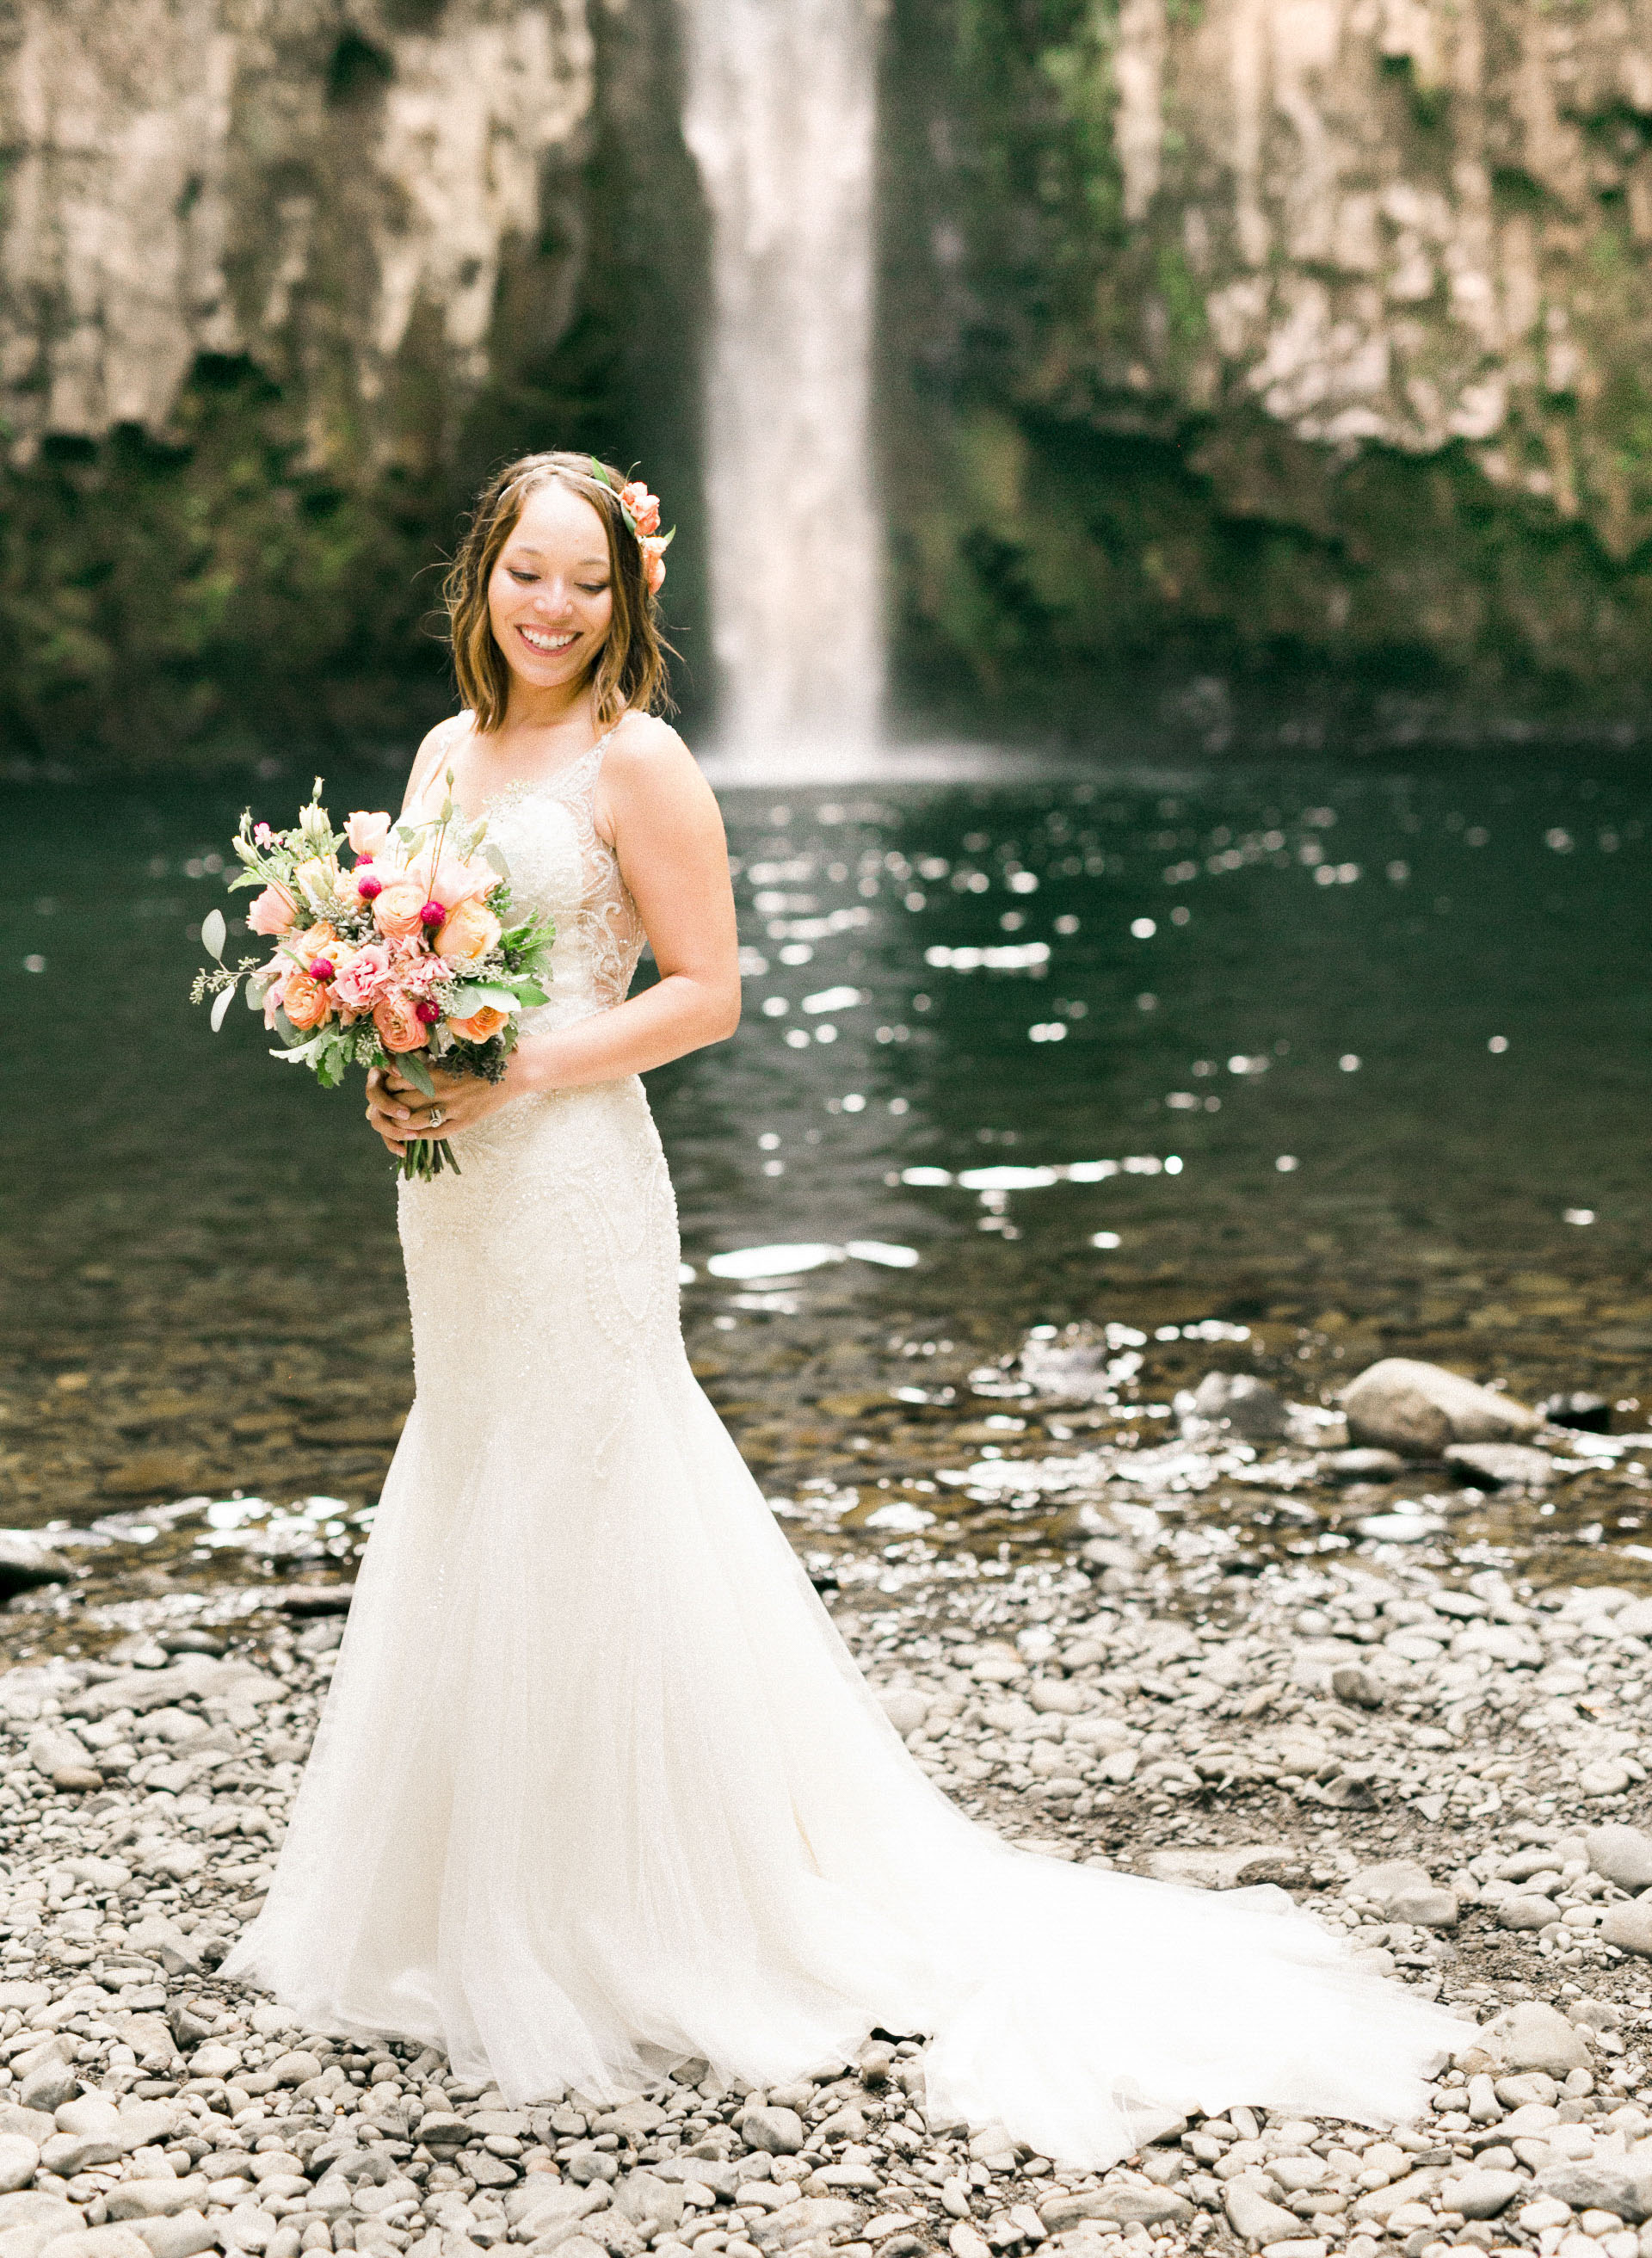 abiqua_falls_elopement_wedding_oregon_photographer_videographer_064.jpg